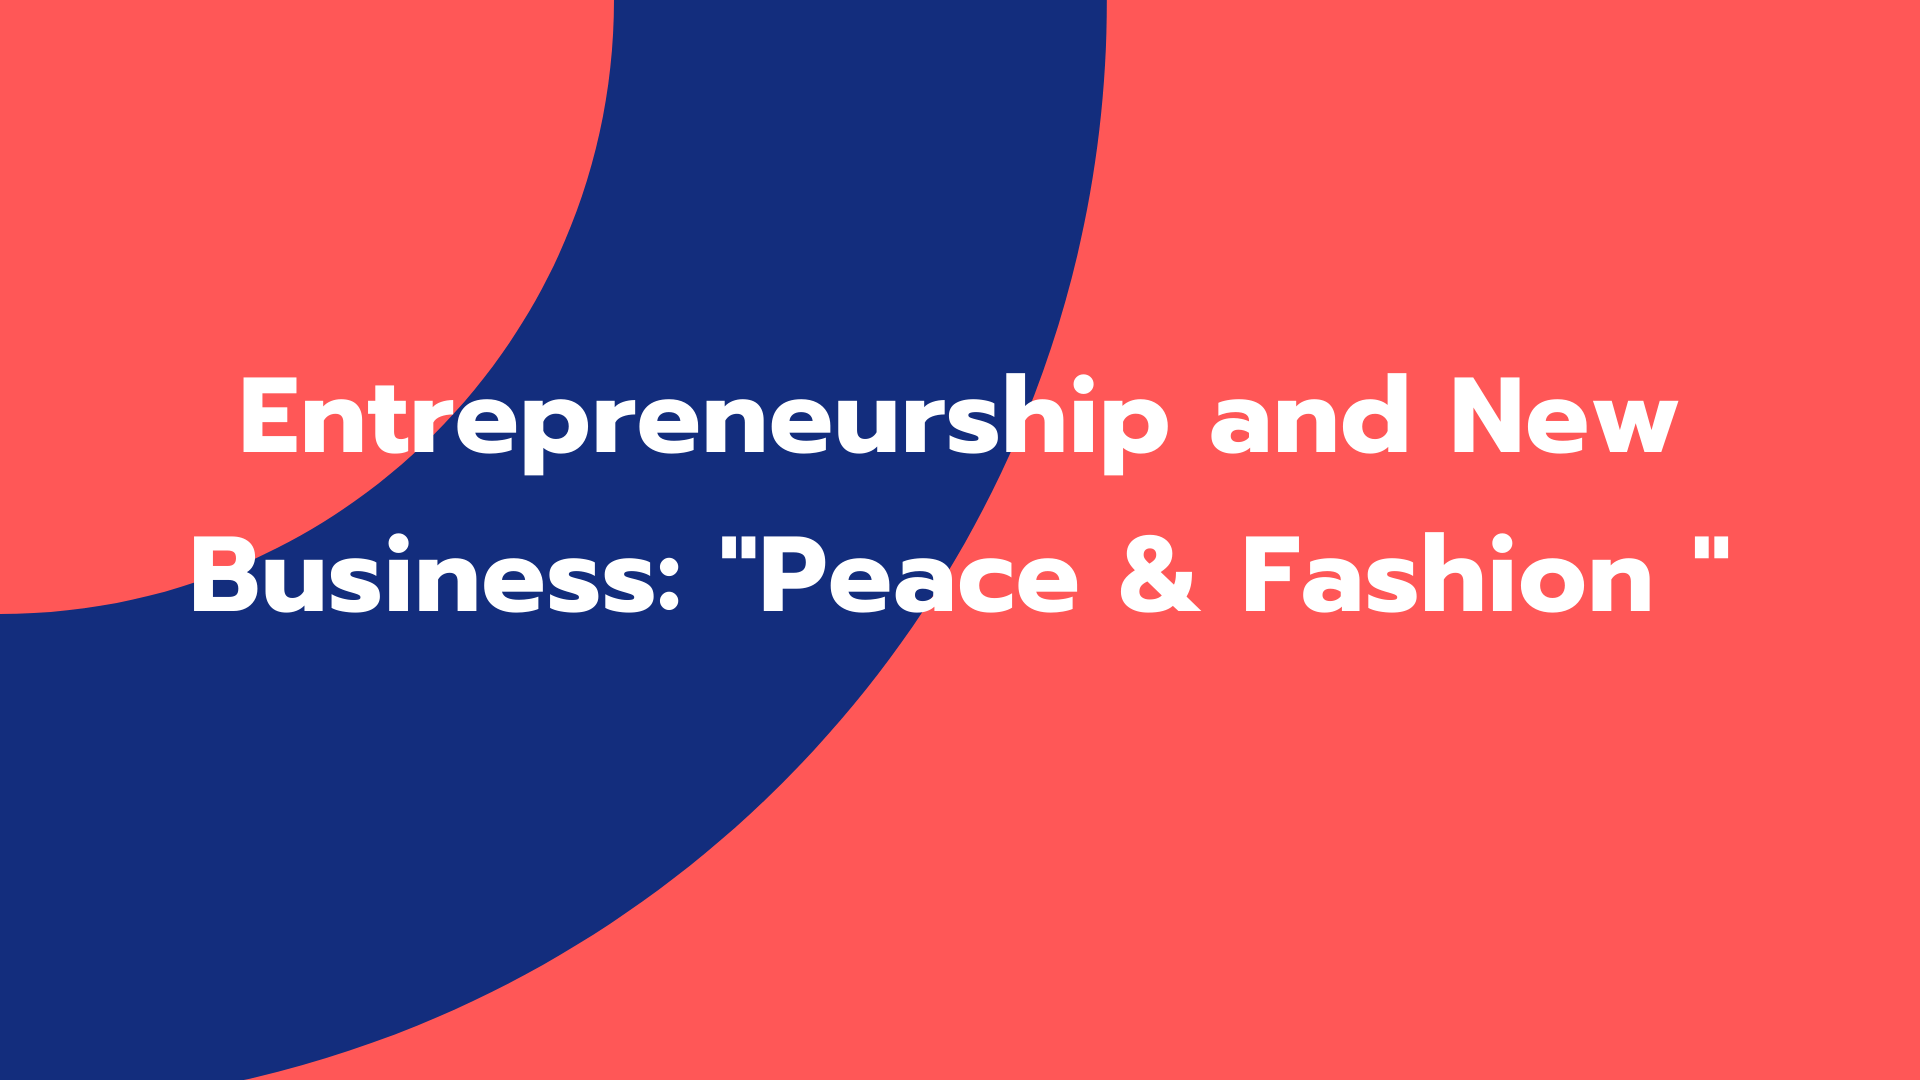 "Entrepreneurship and New Business ""Peace & Fashion """